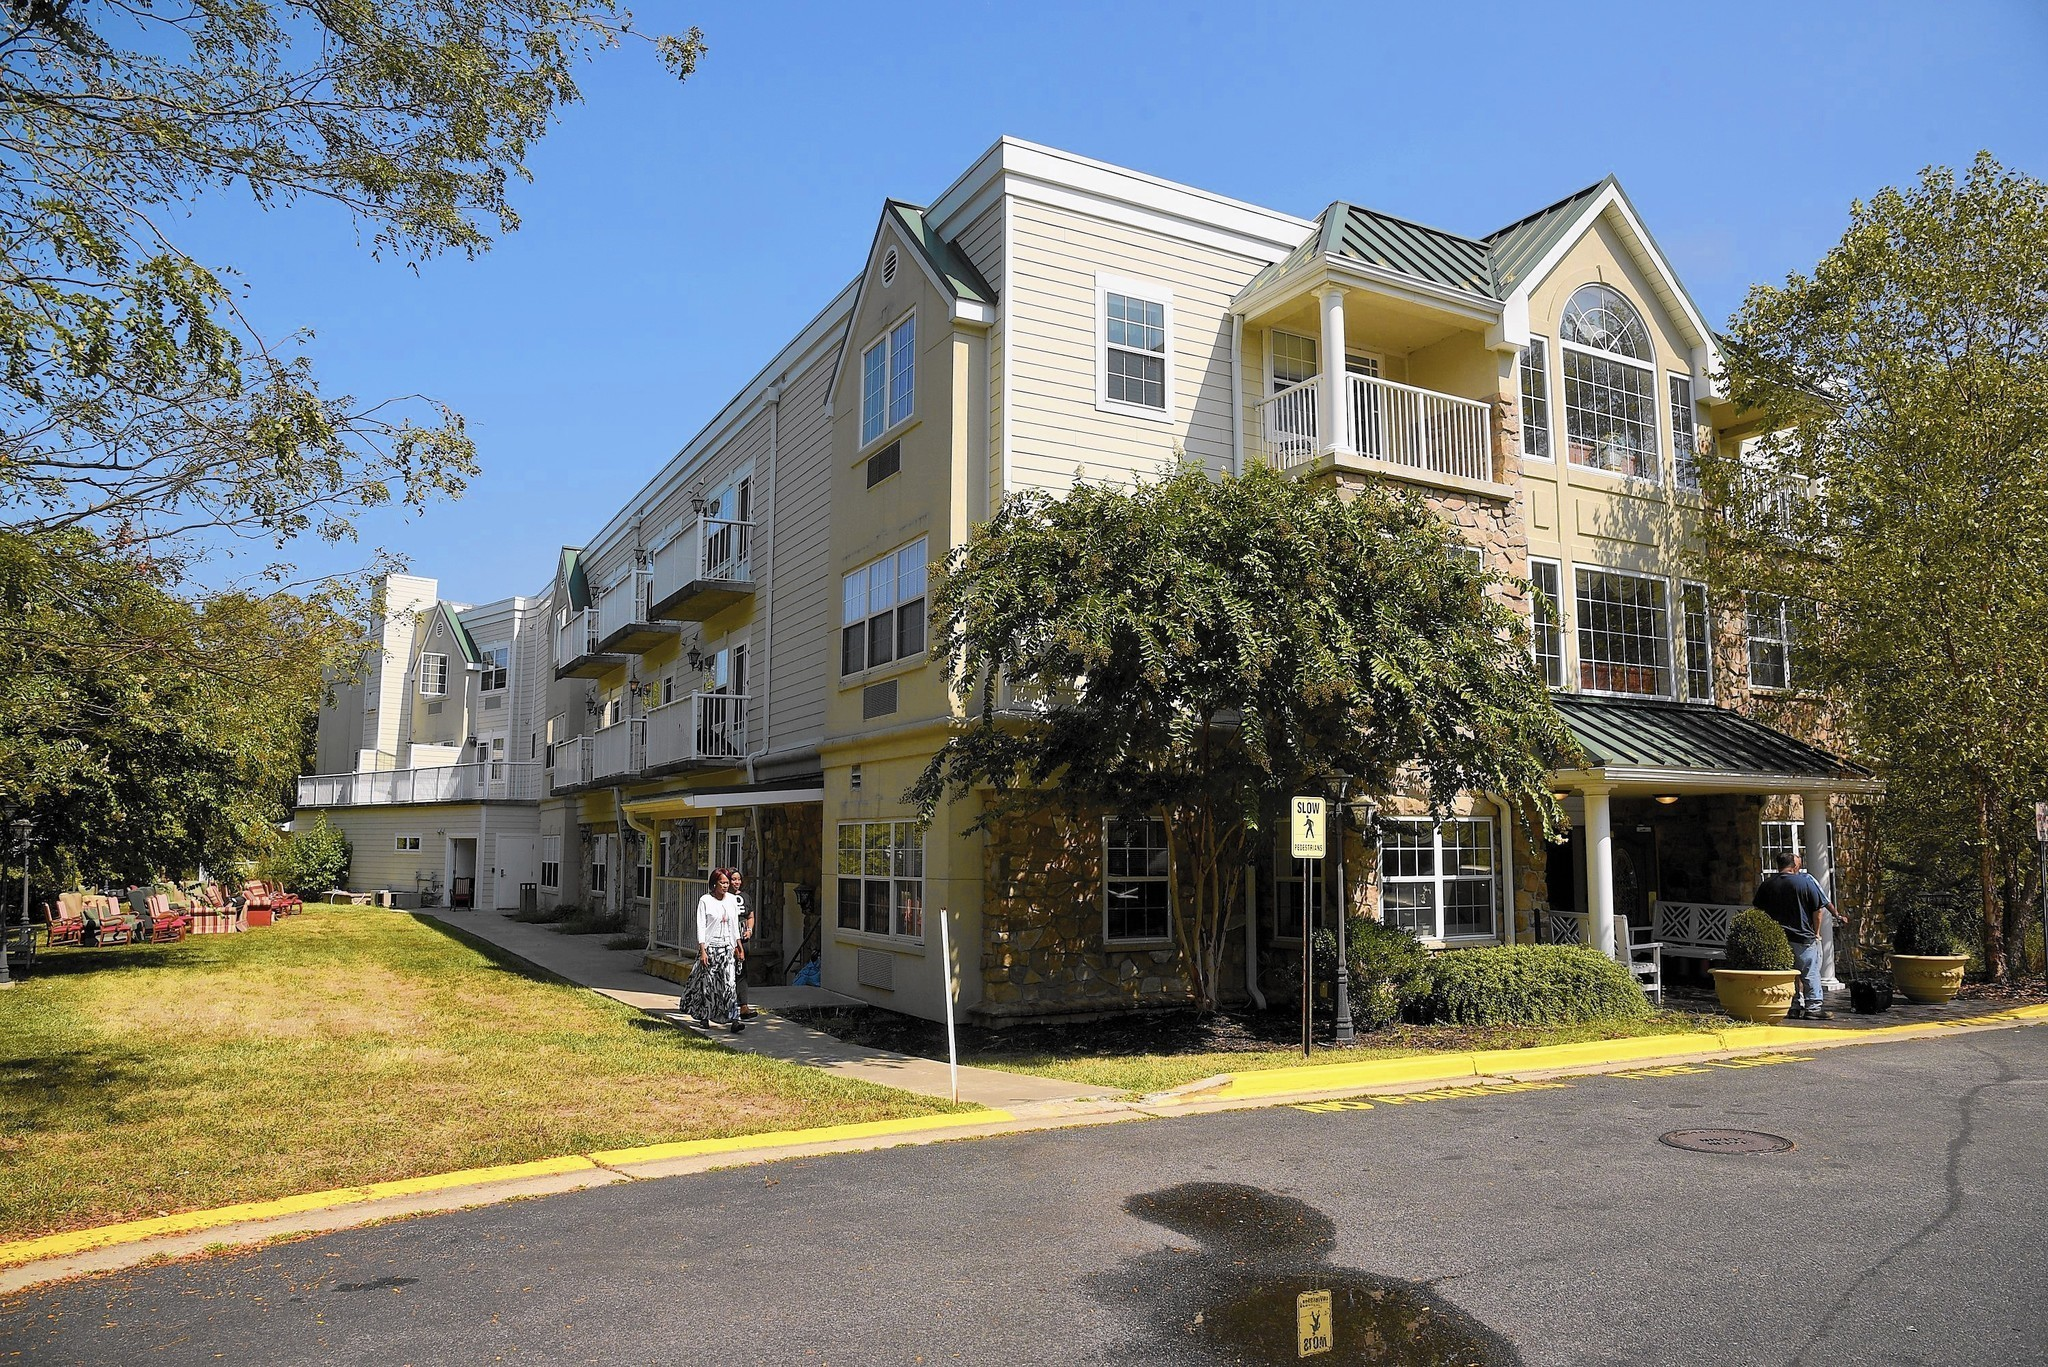 Investigation Continues Into Fire At Severna Park Assisted Living Facility